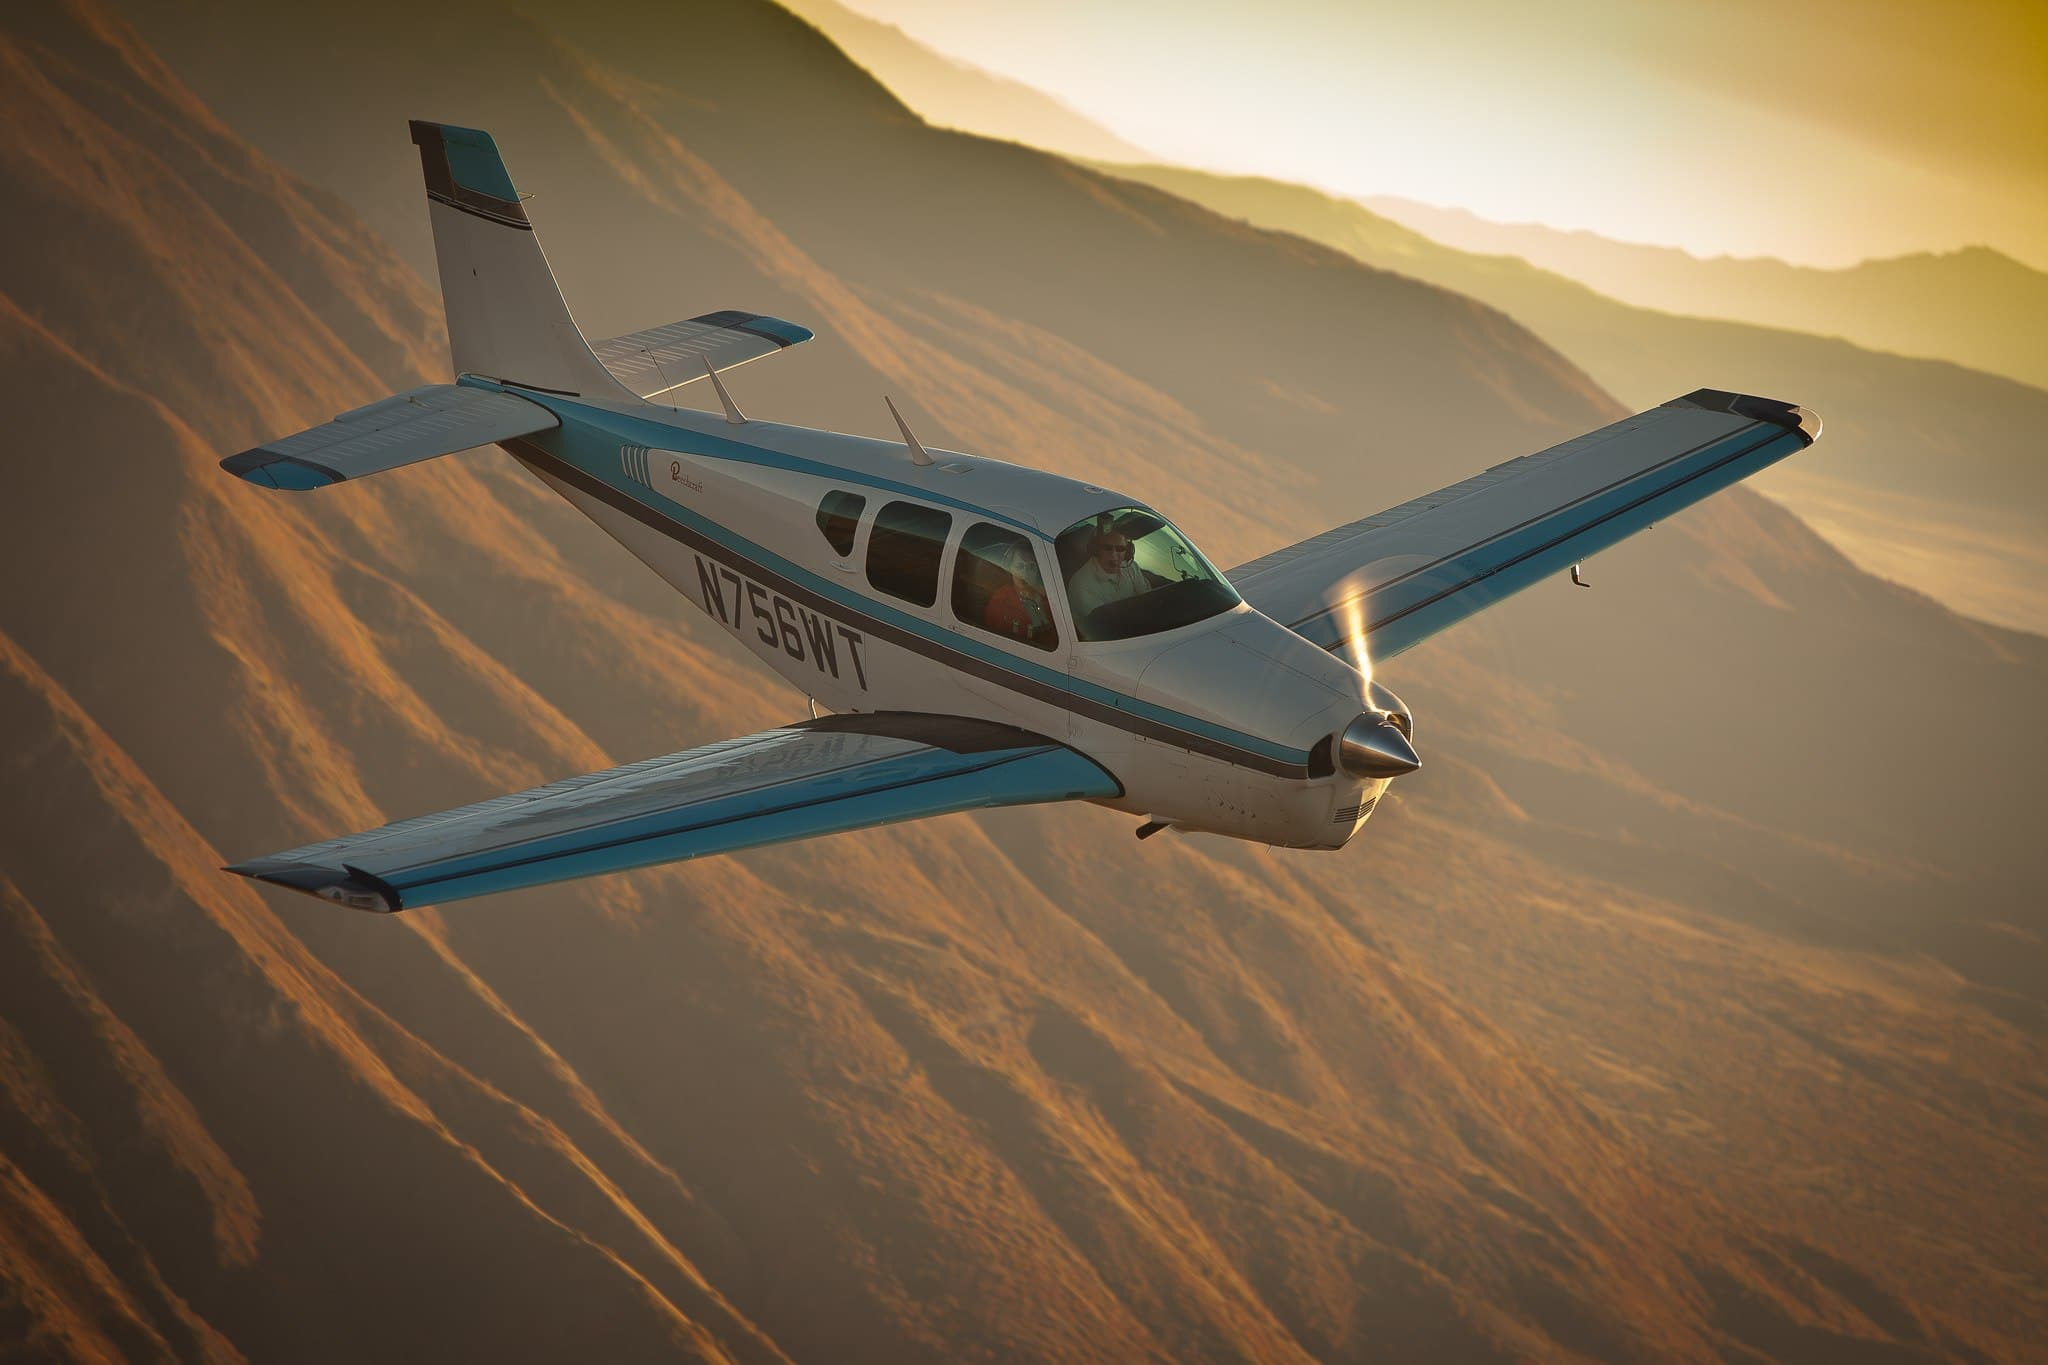 Beechcraft Bonanza - one of many high-performance airplanes